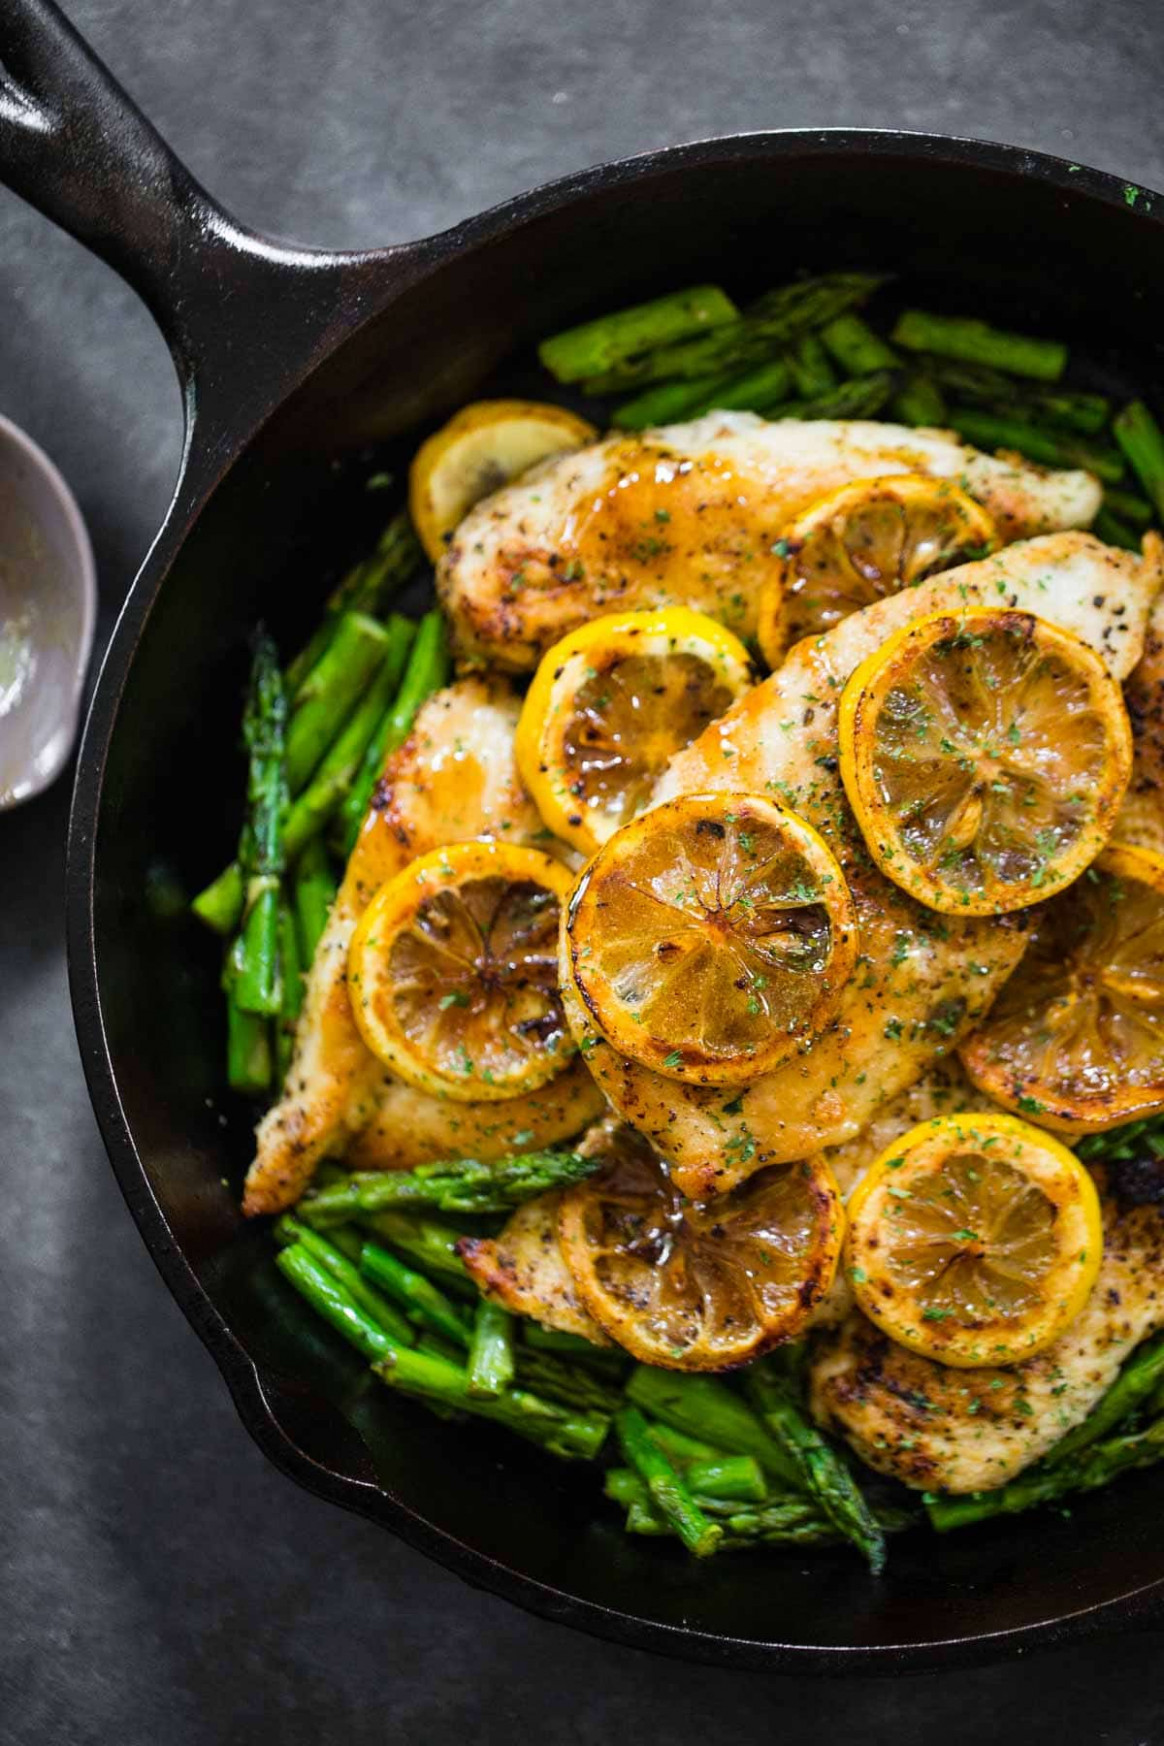 9 Ingredient Lemon Chicken with Asparagus Recipe - Pinch of Yum